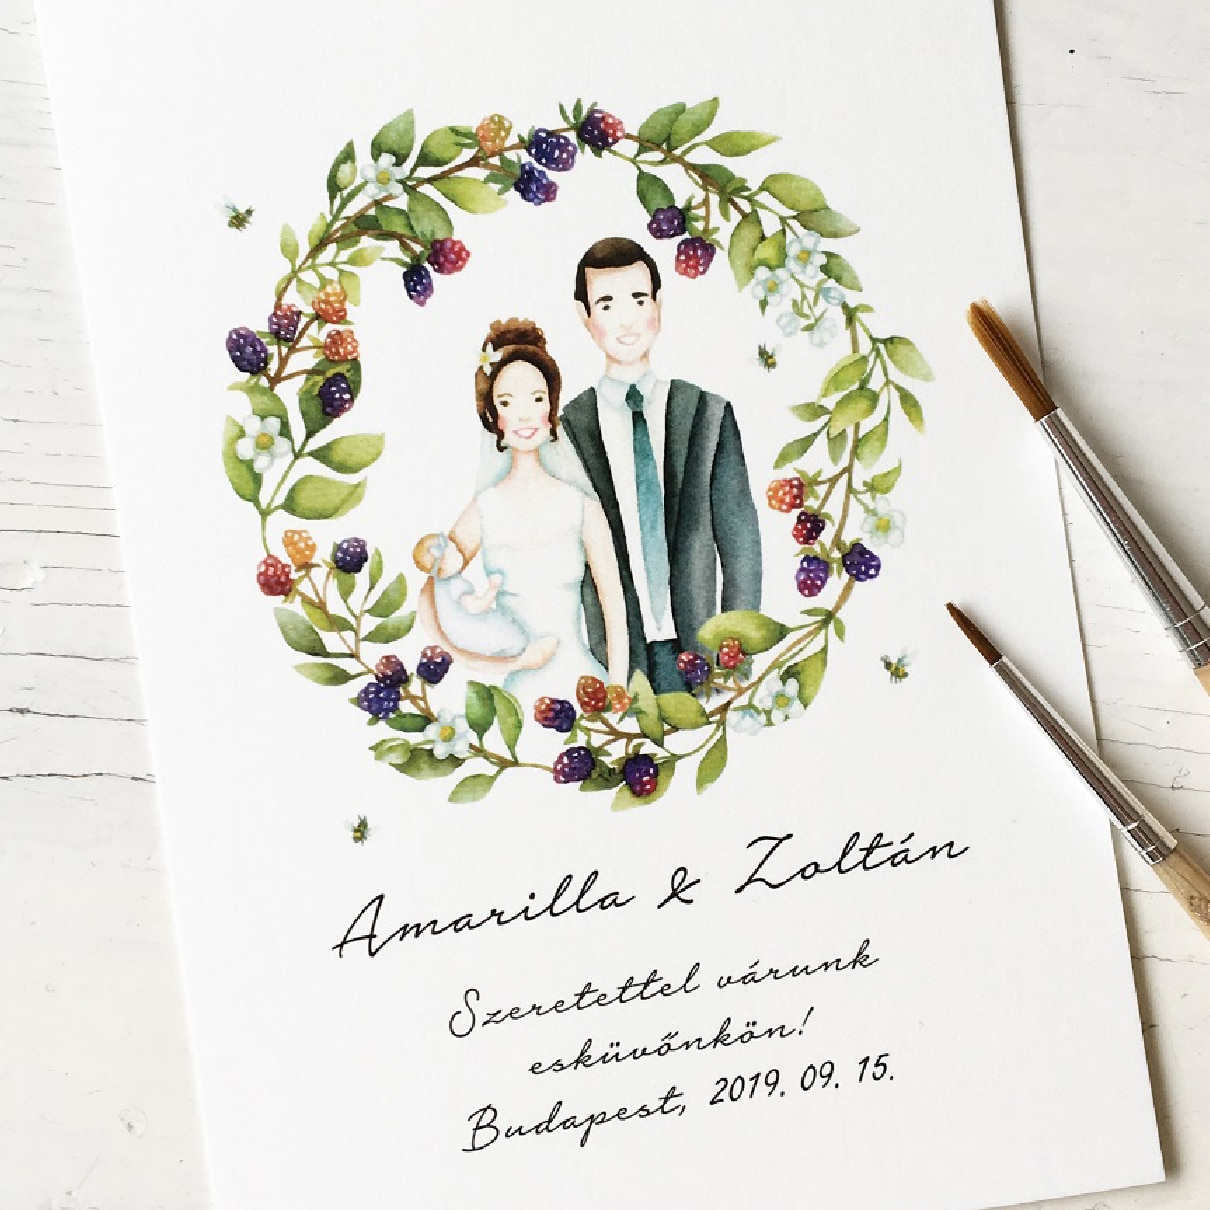 Wedding invite - custom watercolor illustration